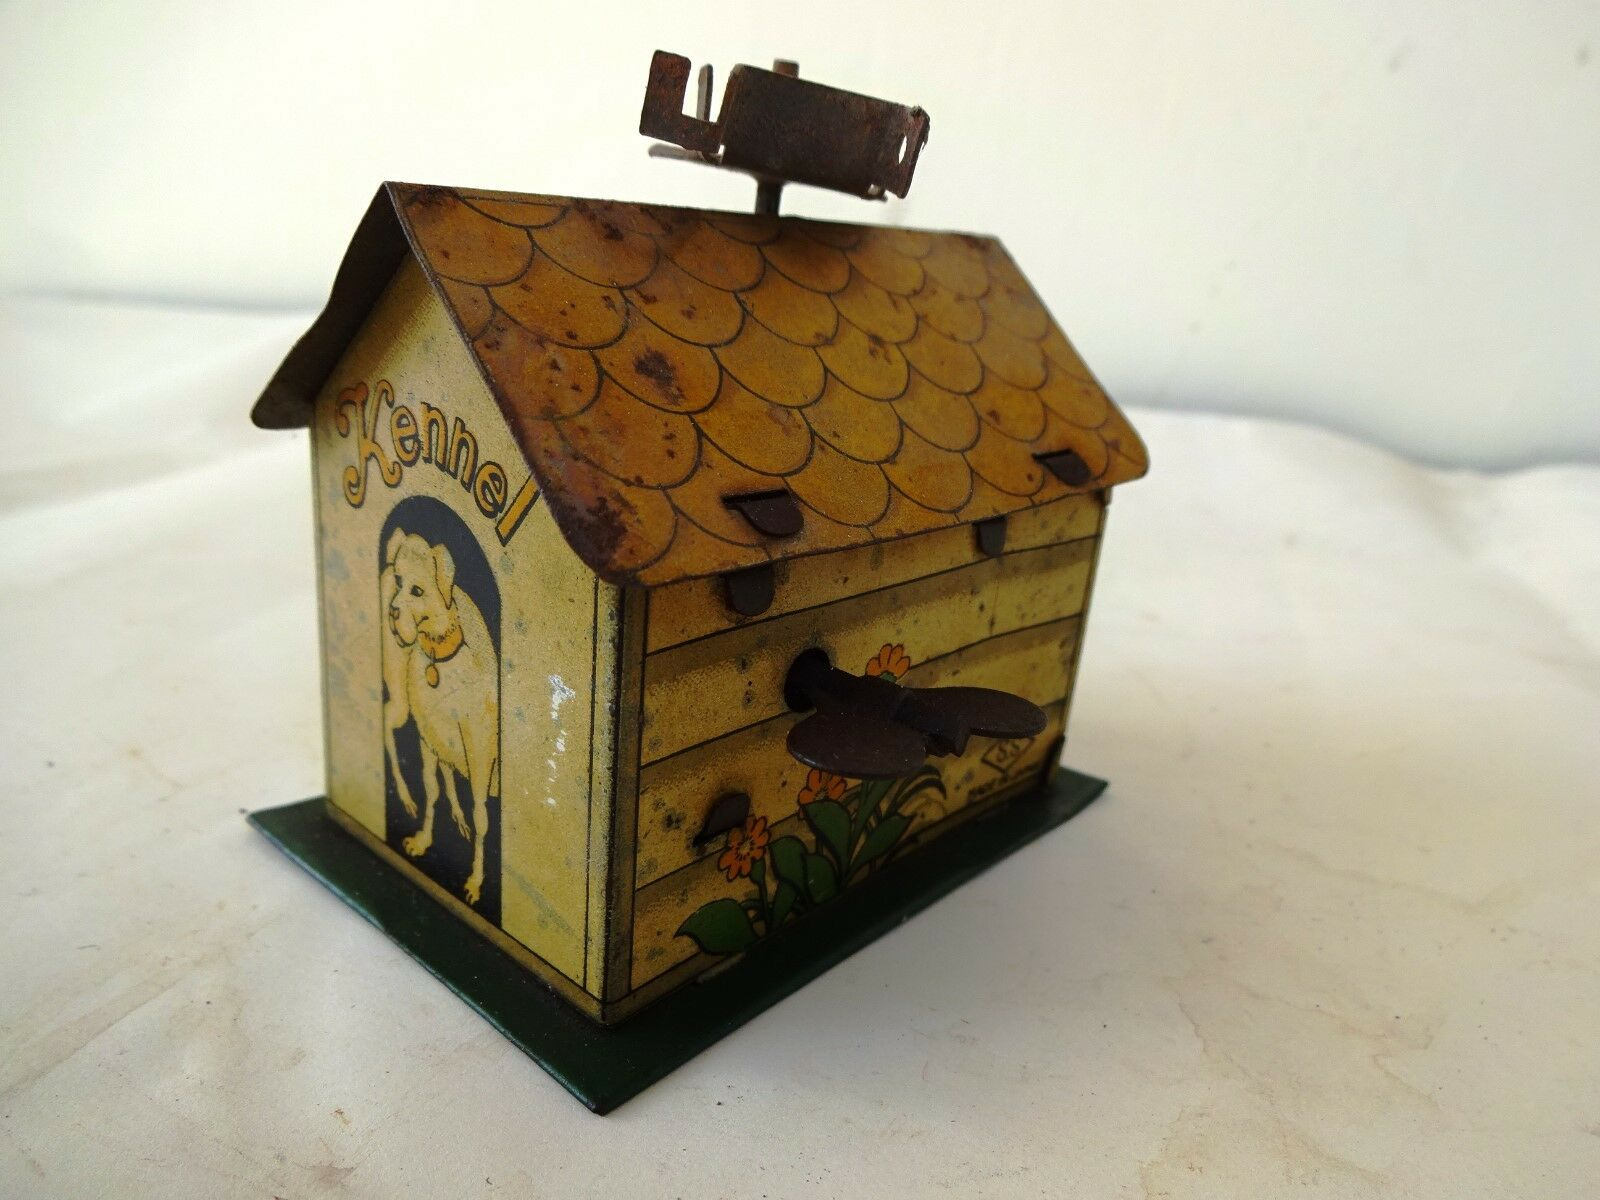 Kennel Dog House Antique Tin Toy Made In Japan Litho Wind Up Collectibles Rare